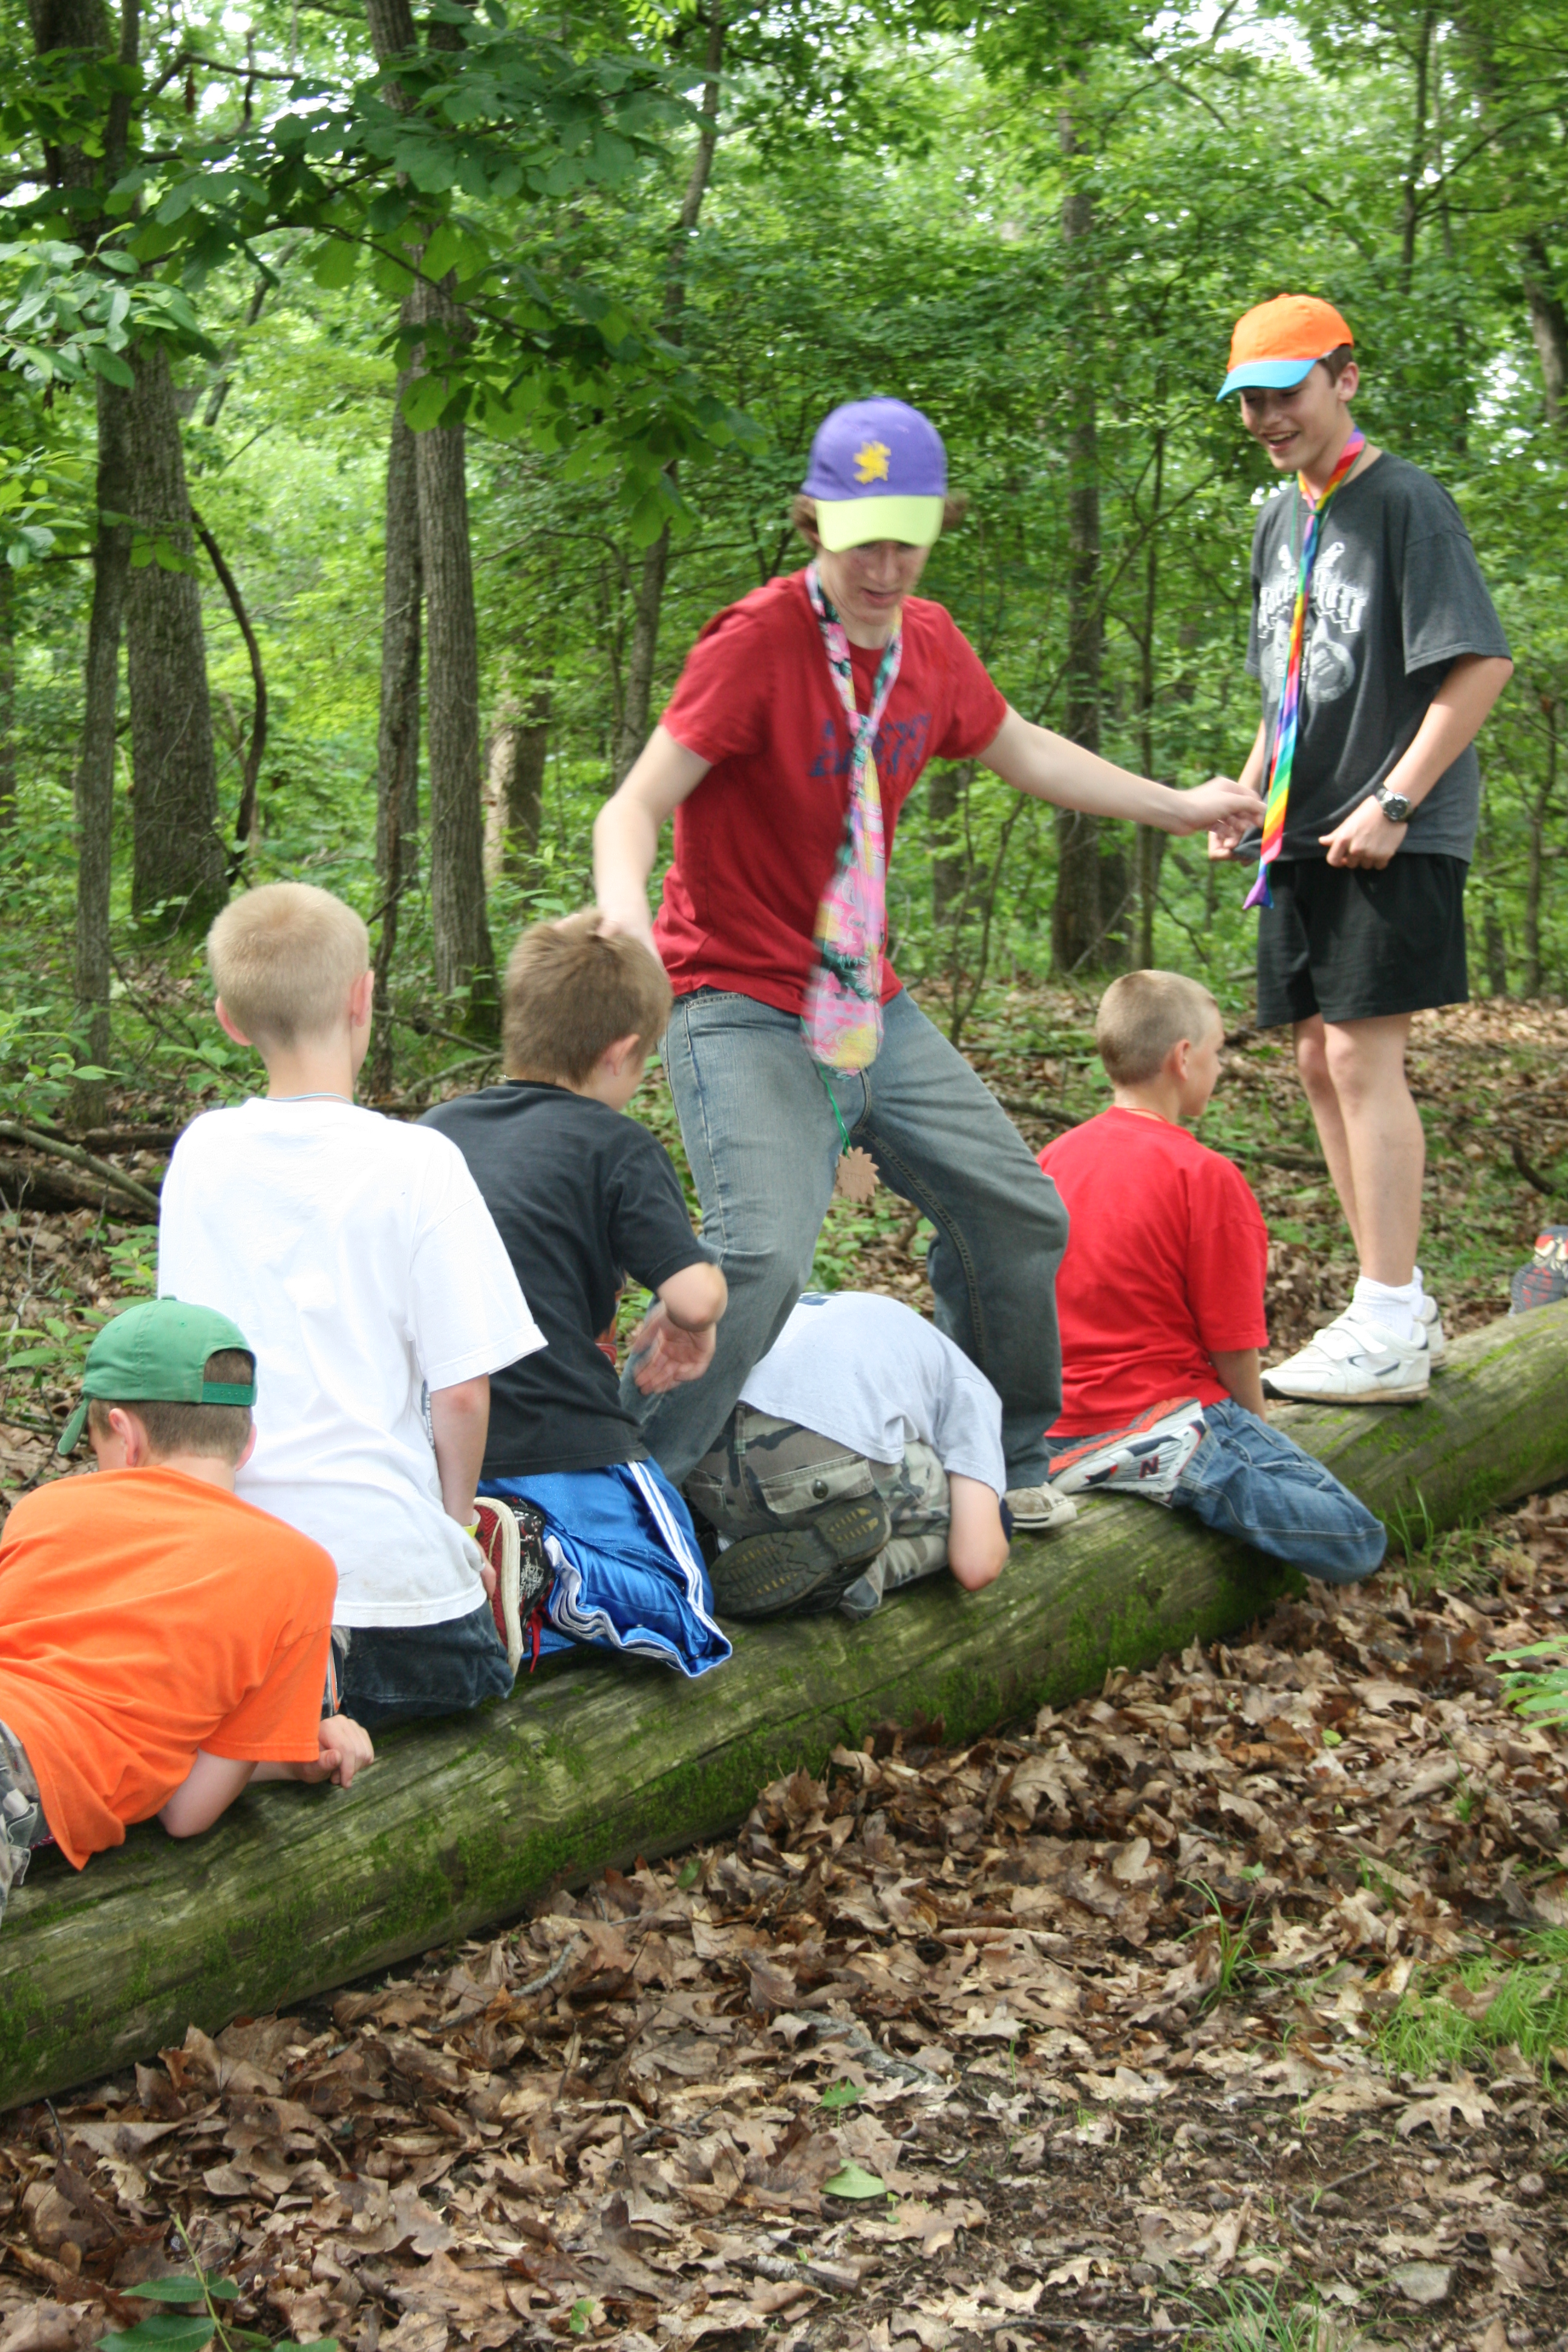 Kids on a log work on a team building activity